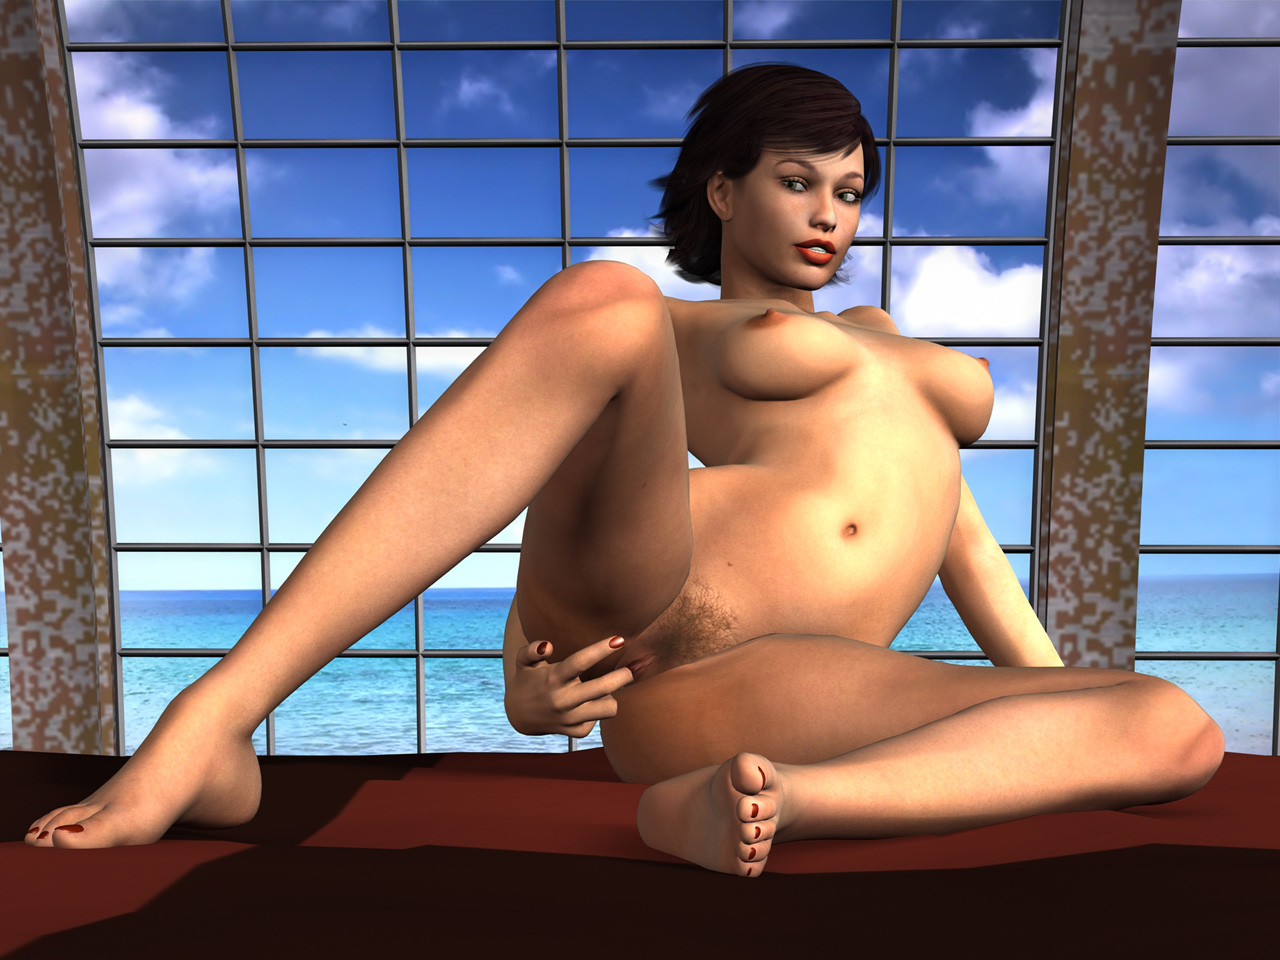 Cute nude 3d sex toons